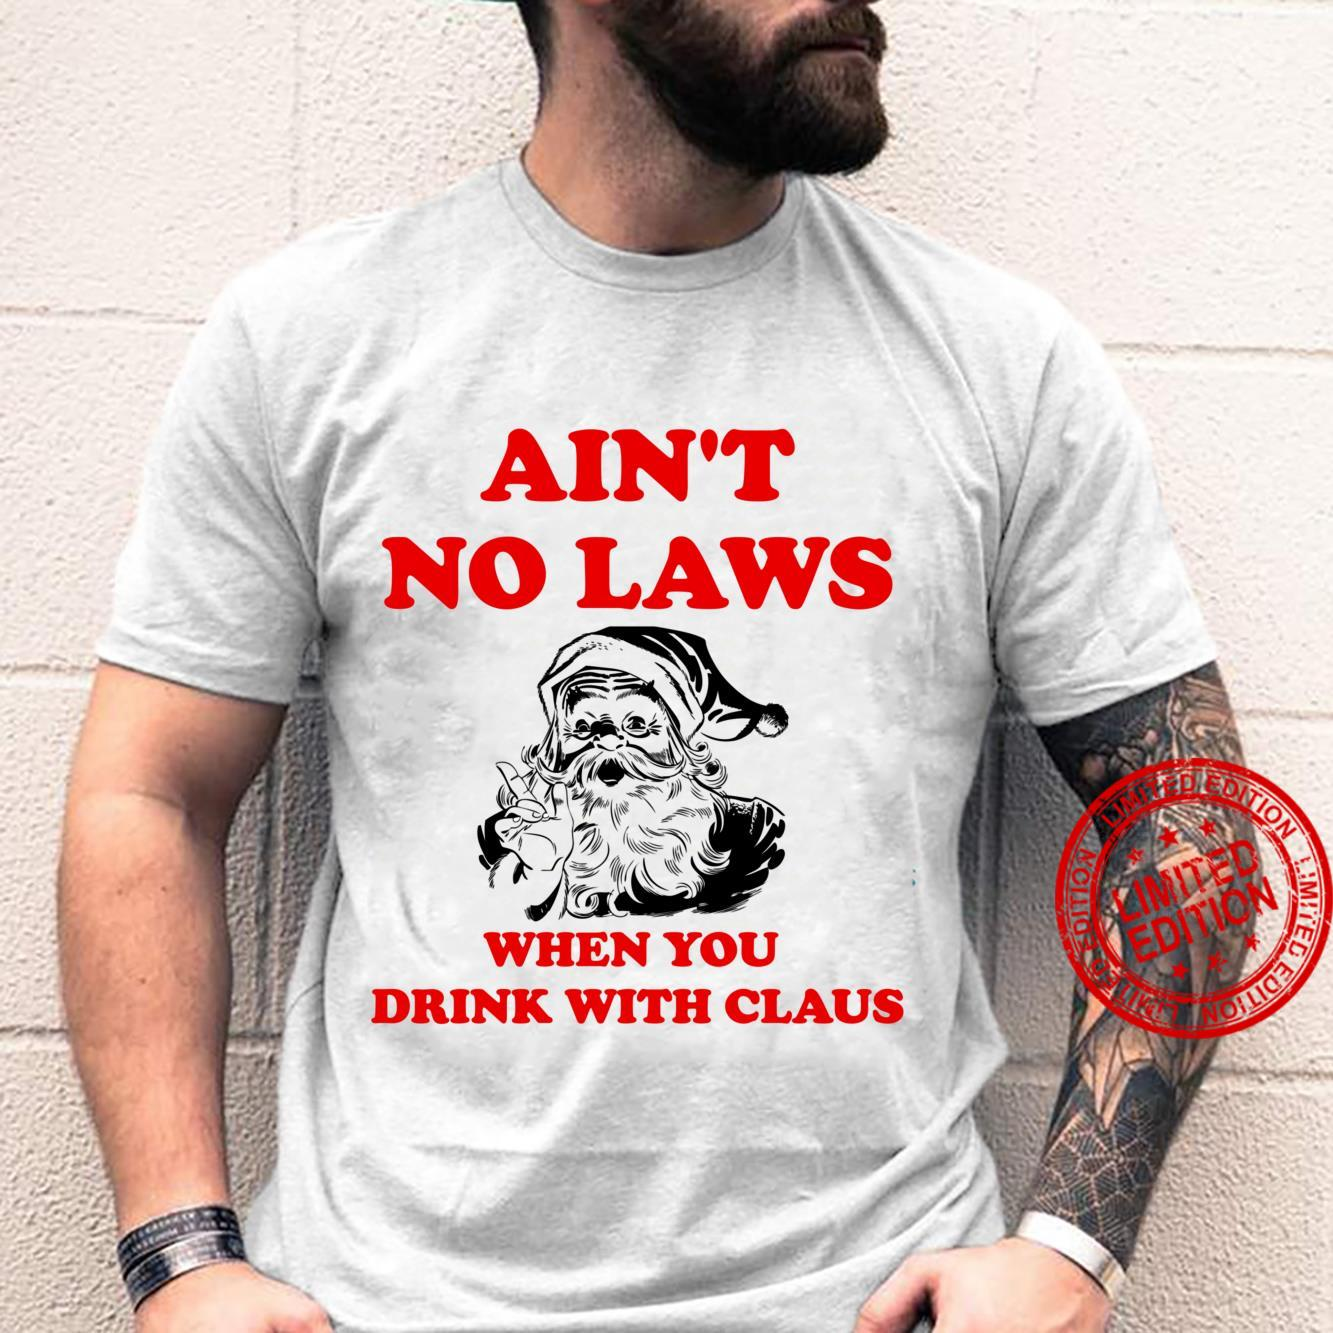 Ain't No Laws When You Drink With Claus Christmas Shirt,2020 Shirt